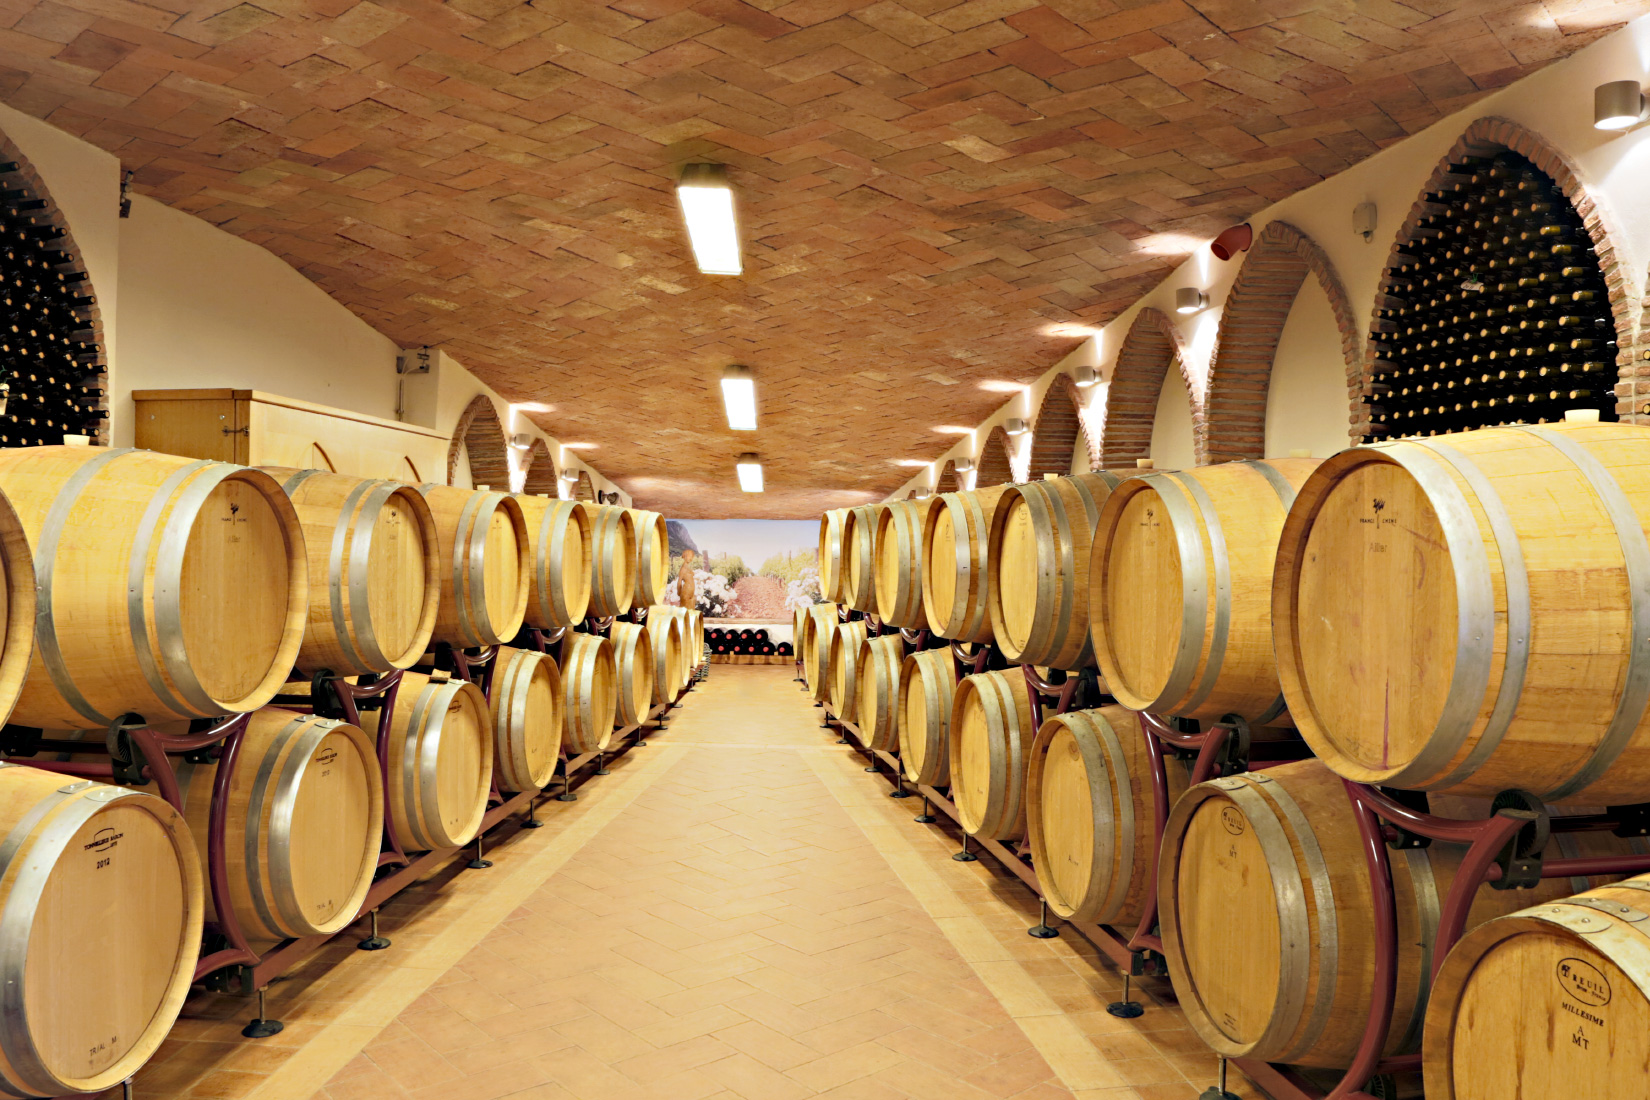 Wine Casks At Capo D'Uomo